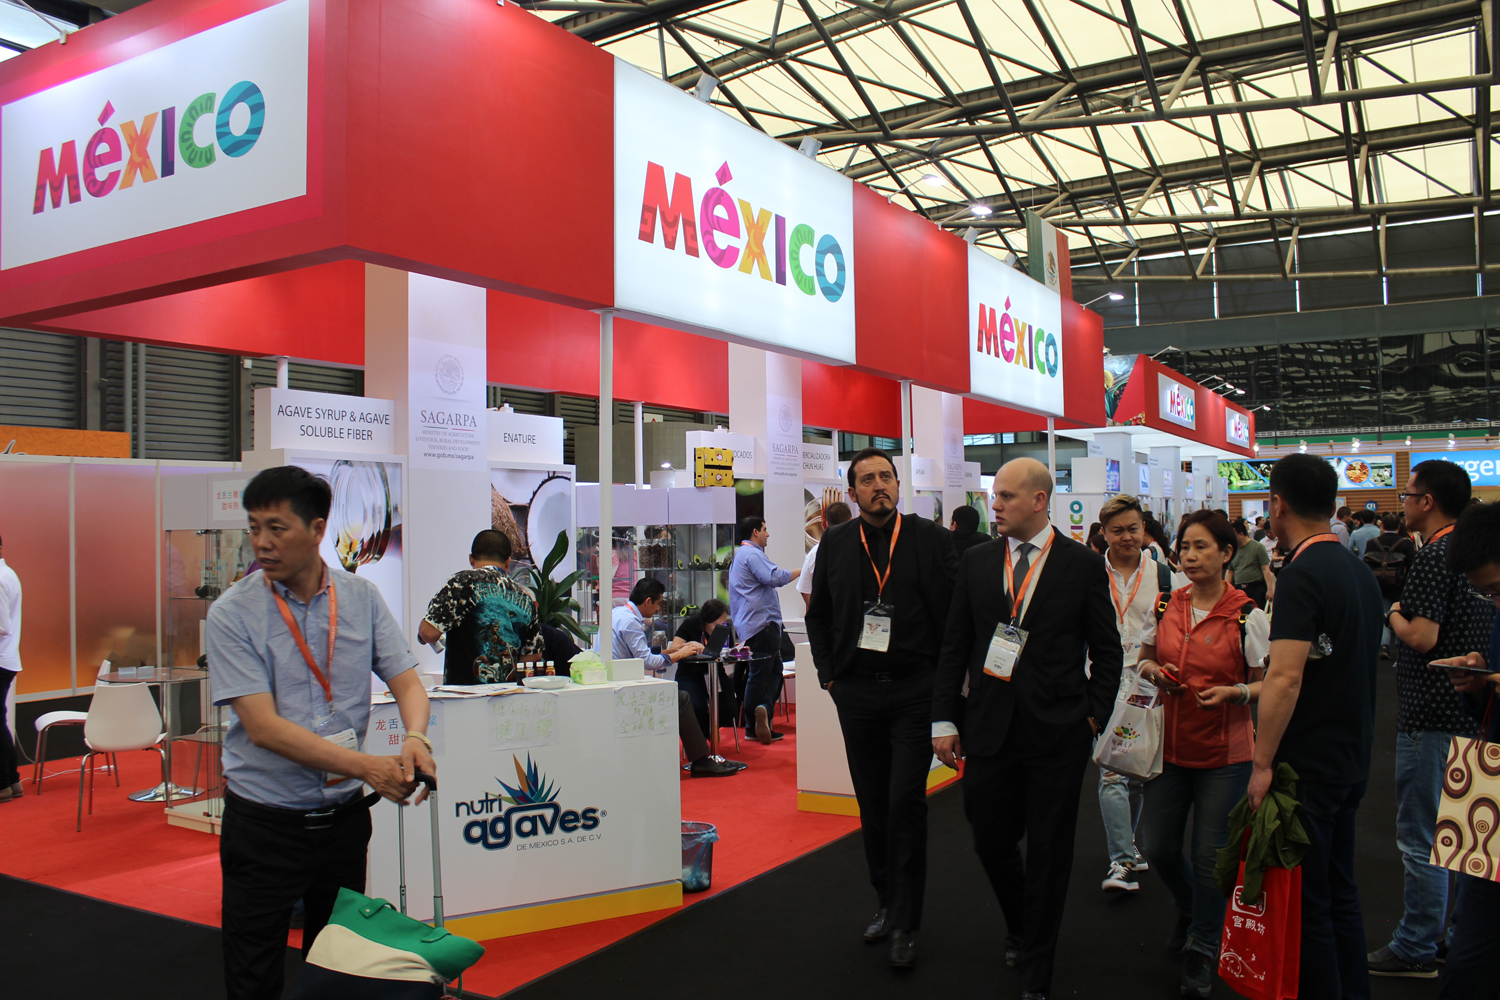 Sial china 2017. jueves 01